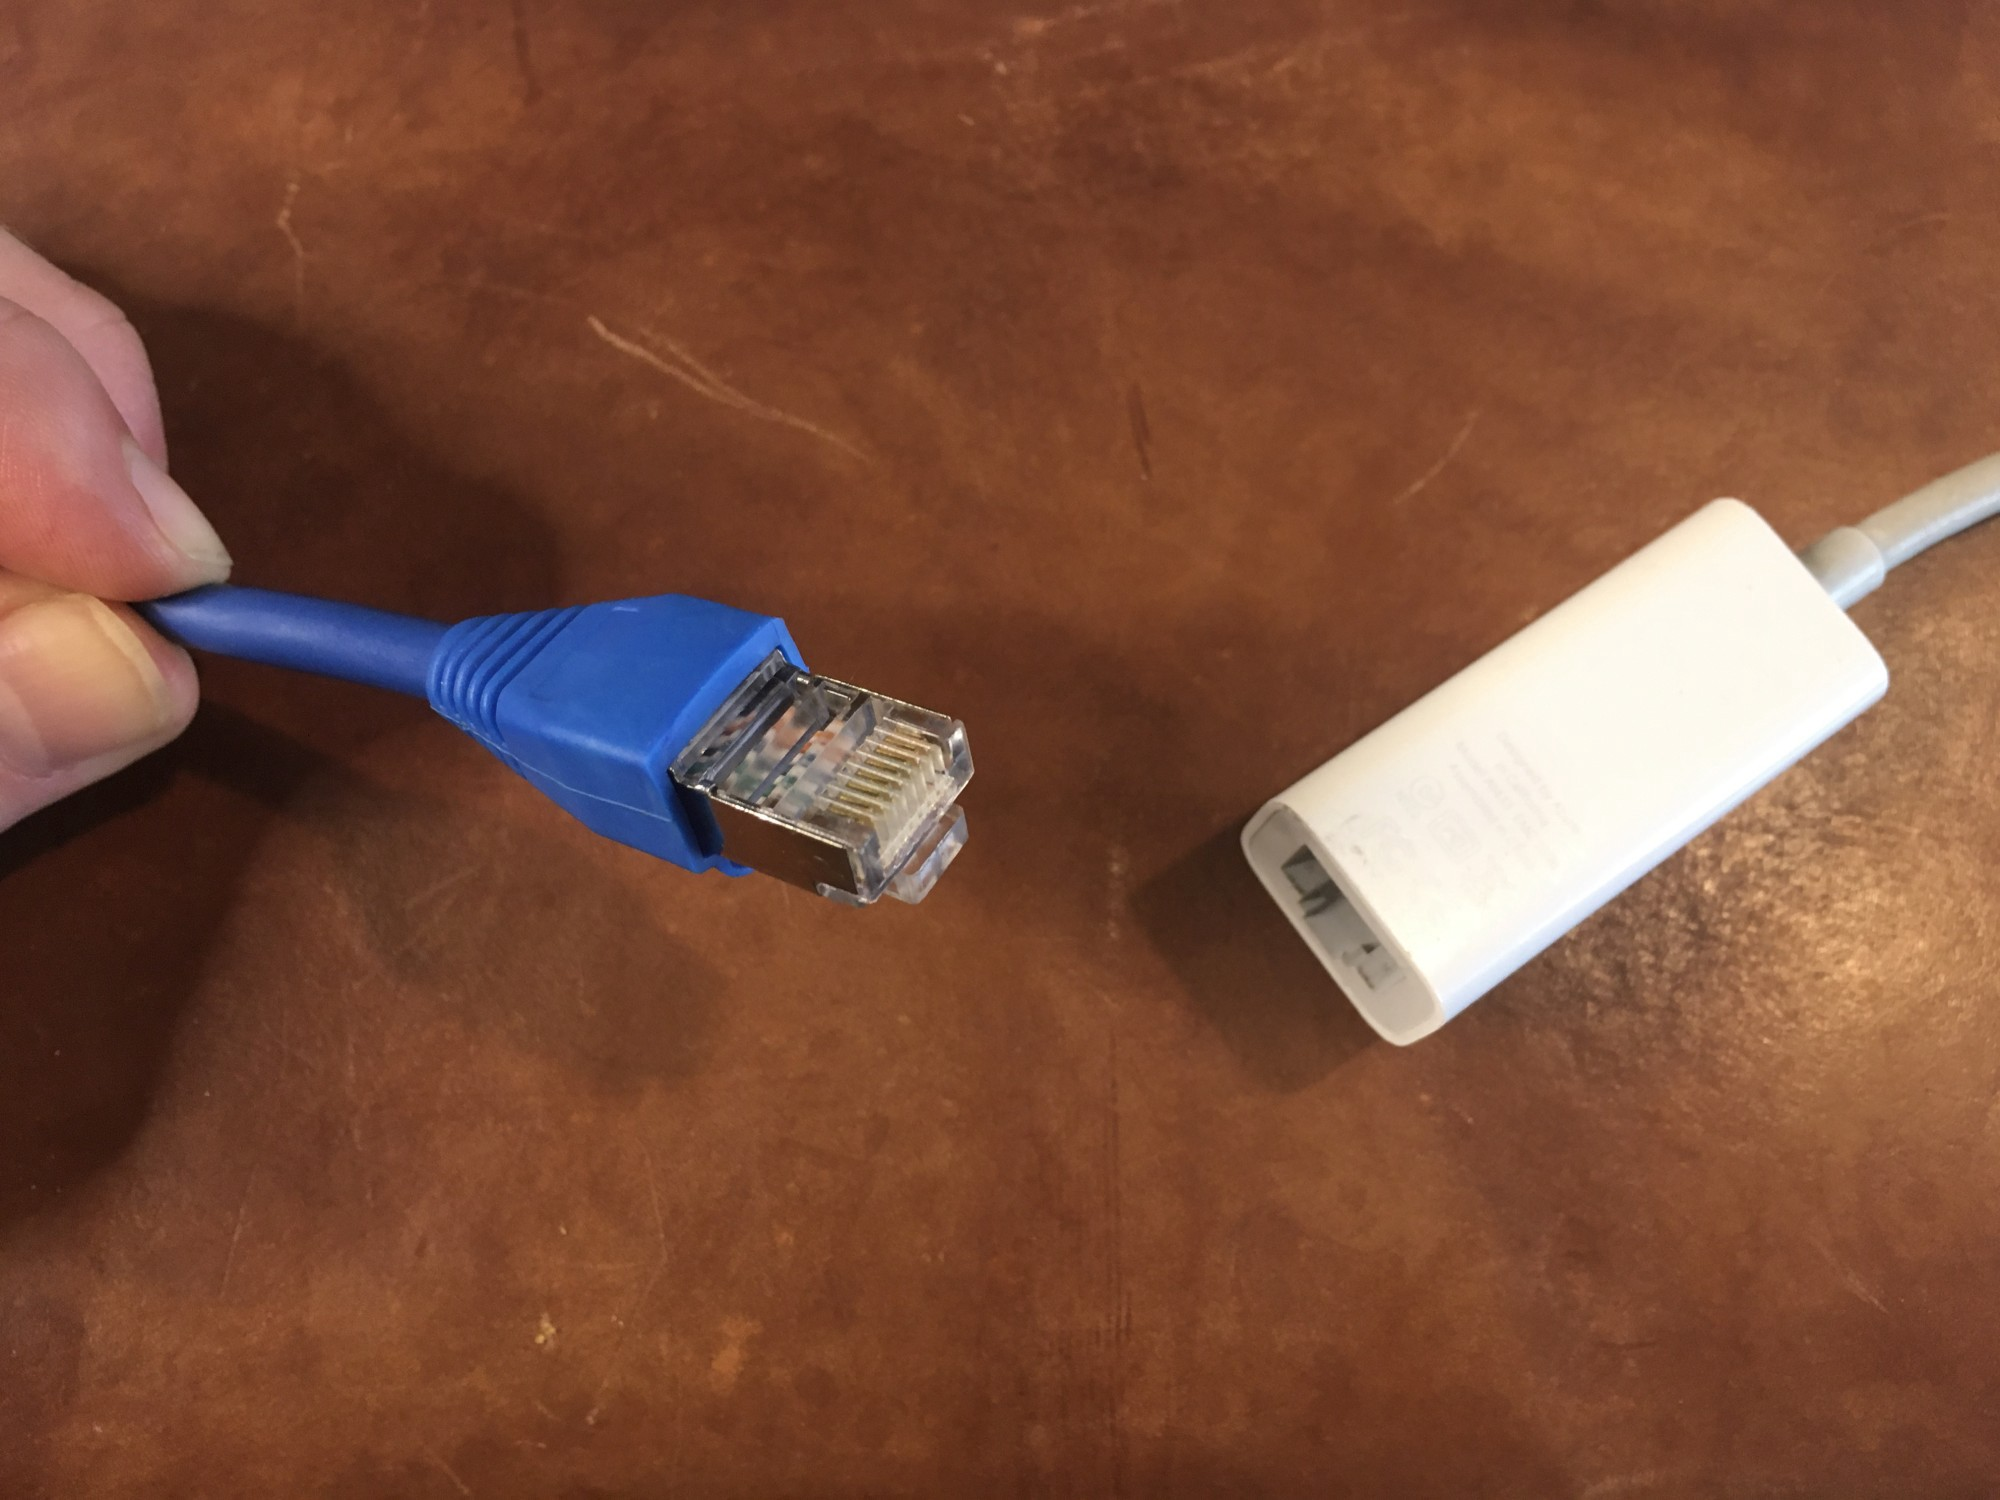 ethernet cable to plug in